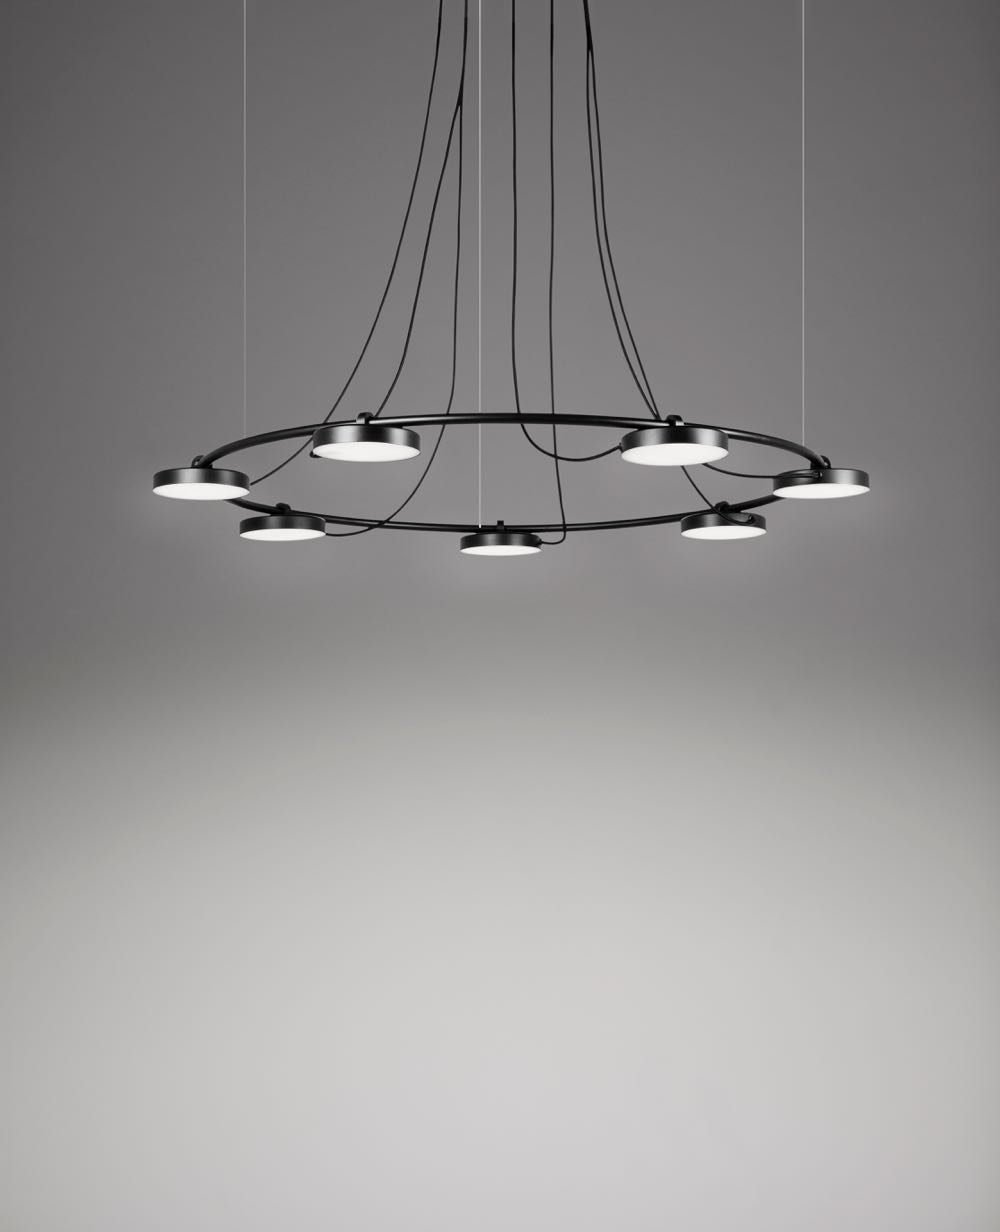 The 'Aro' 3543 pendant from Estiluz.